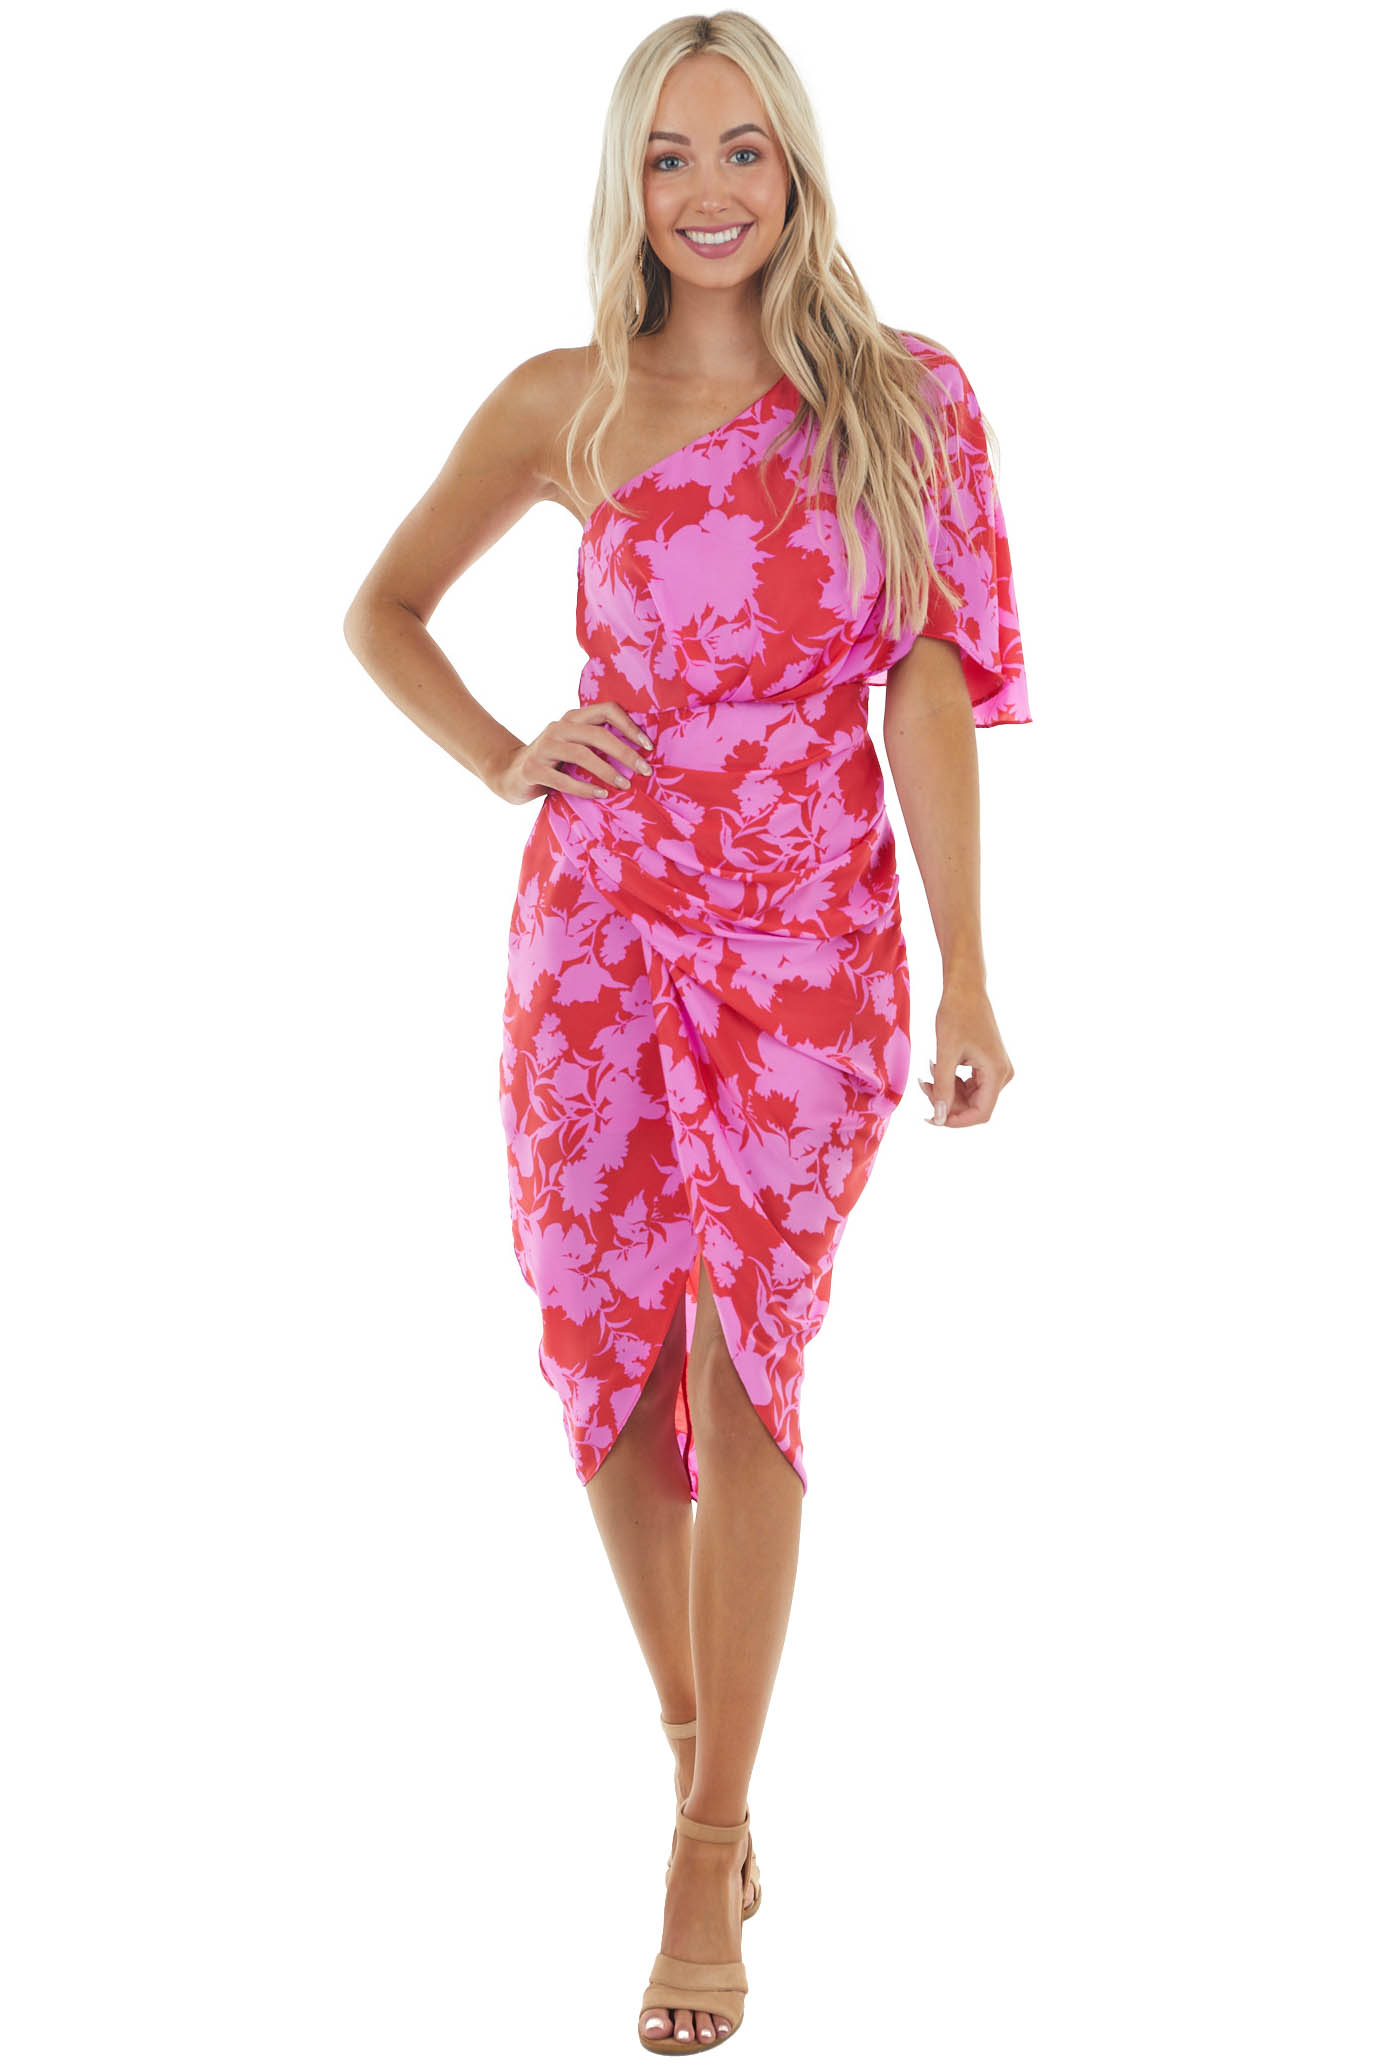 Ruby and Fuchsia Floral One Shoulder Short Woven Dress